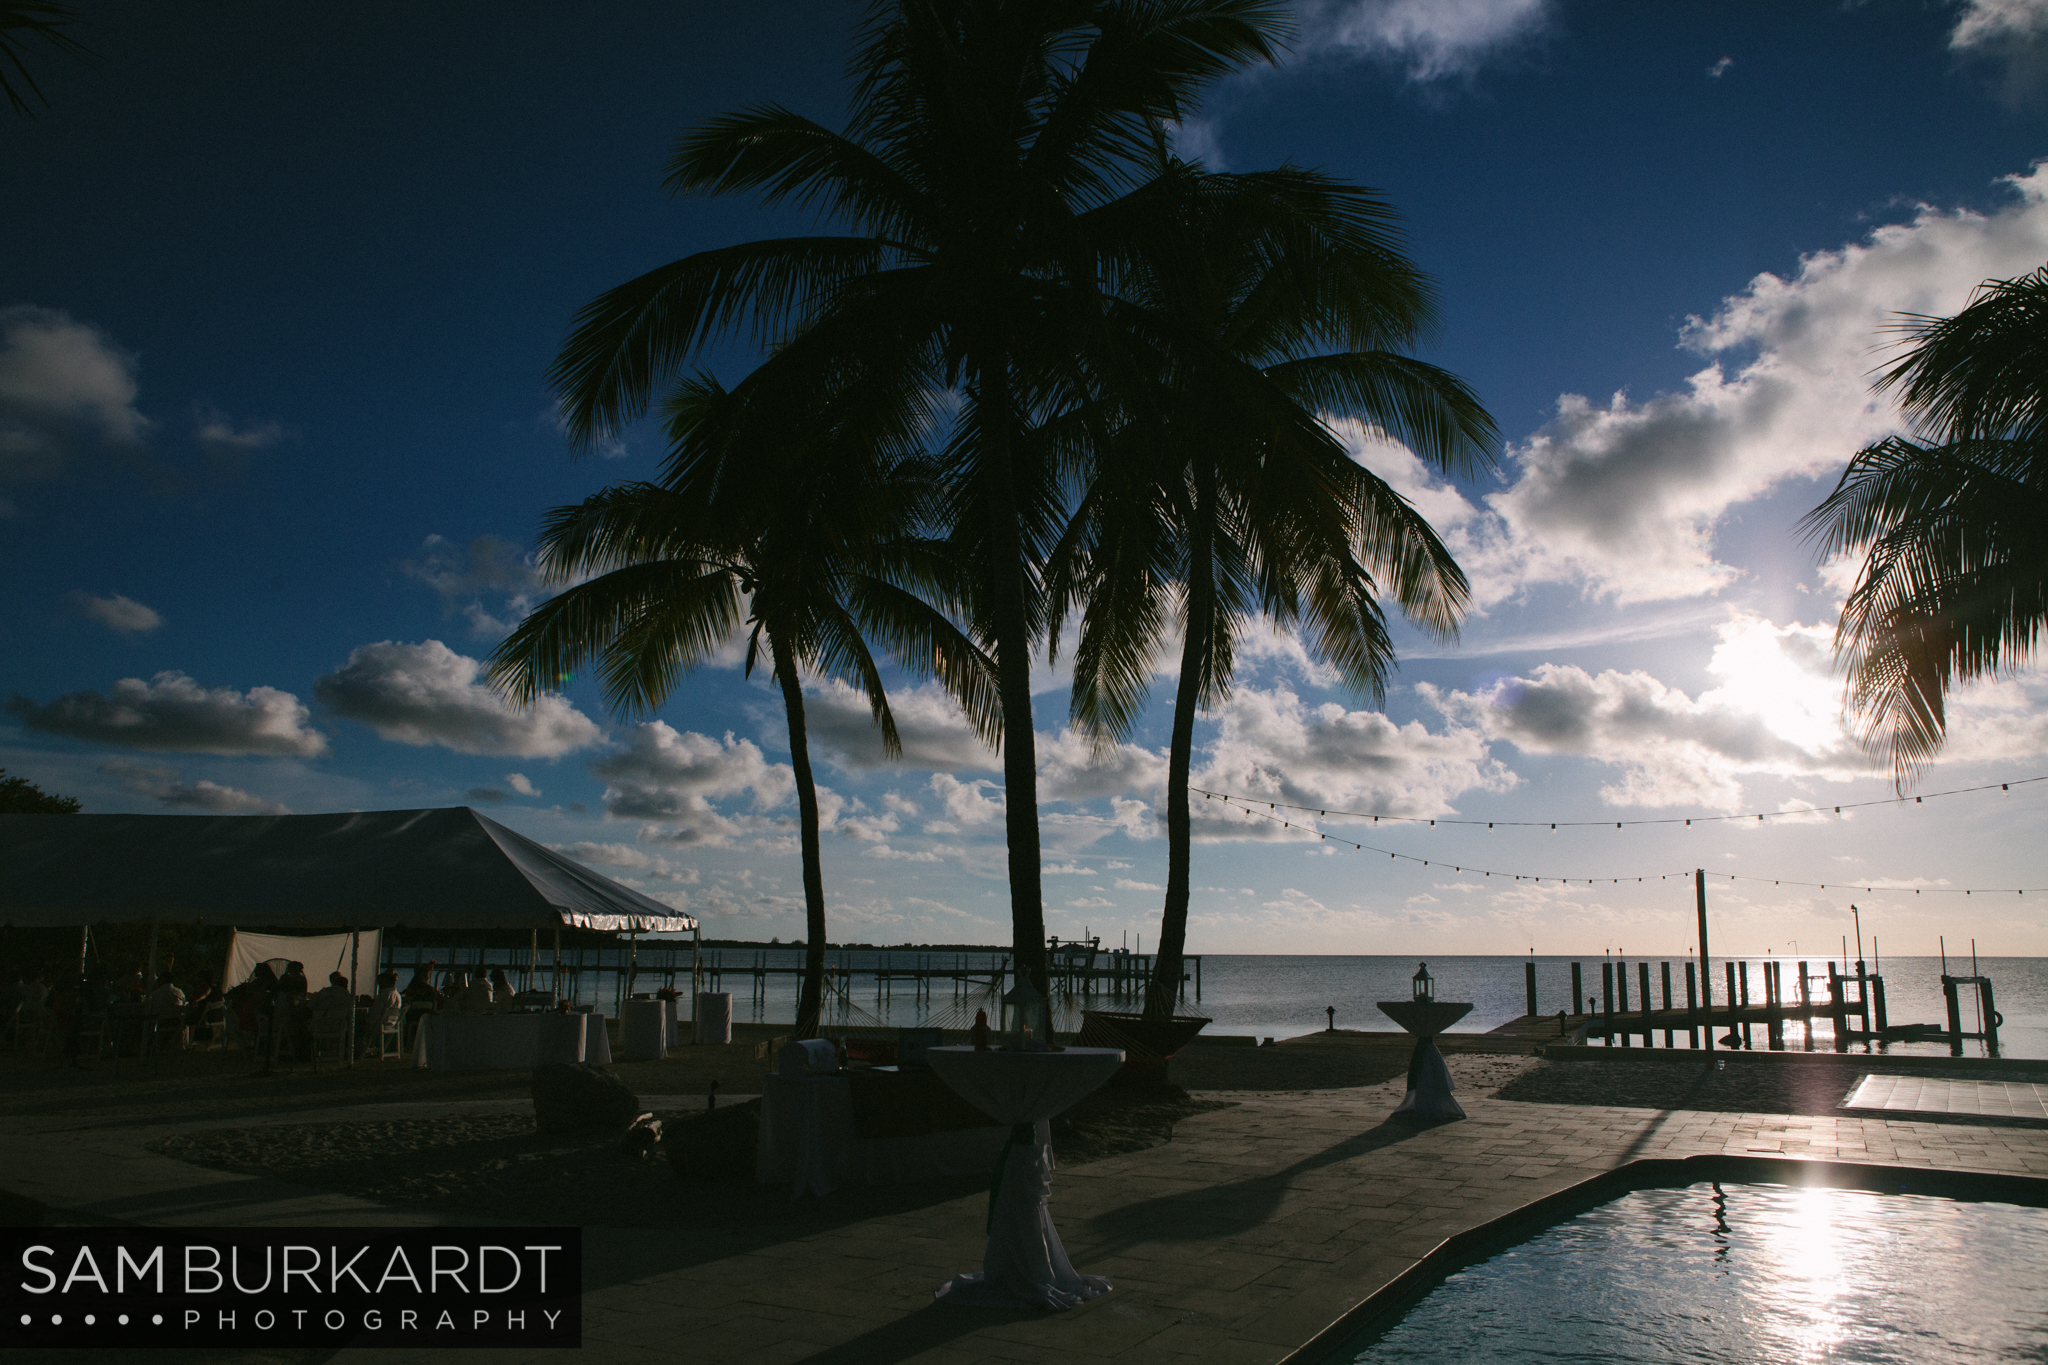 samburkardt_key_west_wedding_marathon_florida_summer_beach_ocean_front_0056.jpg